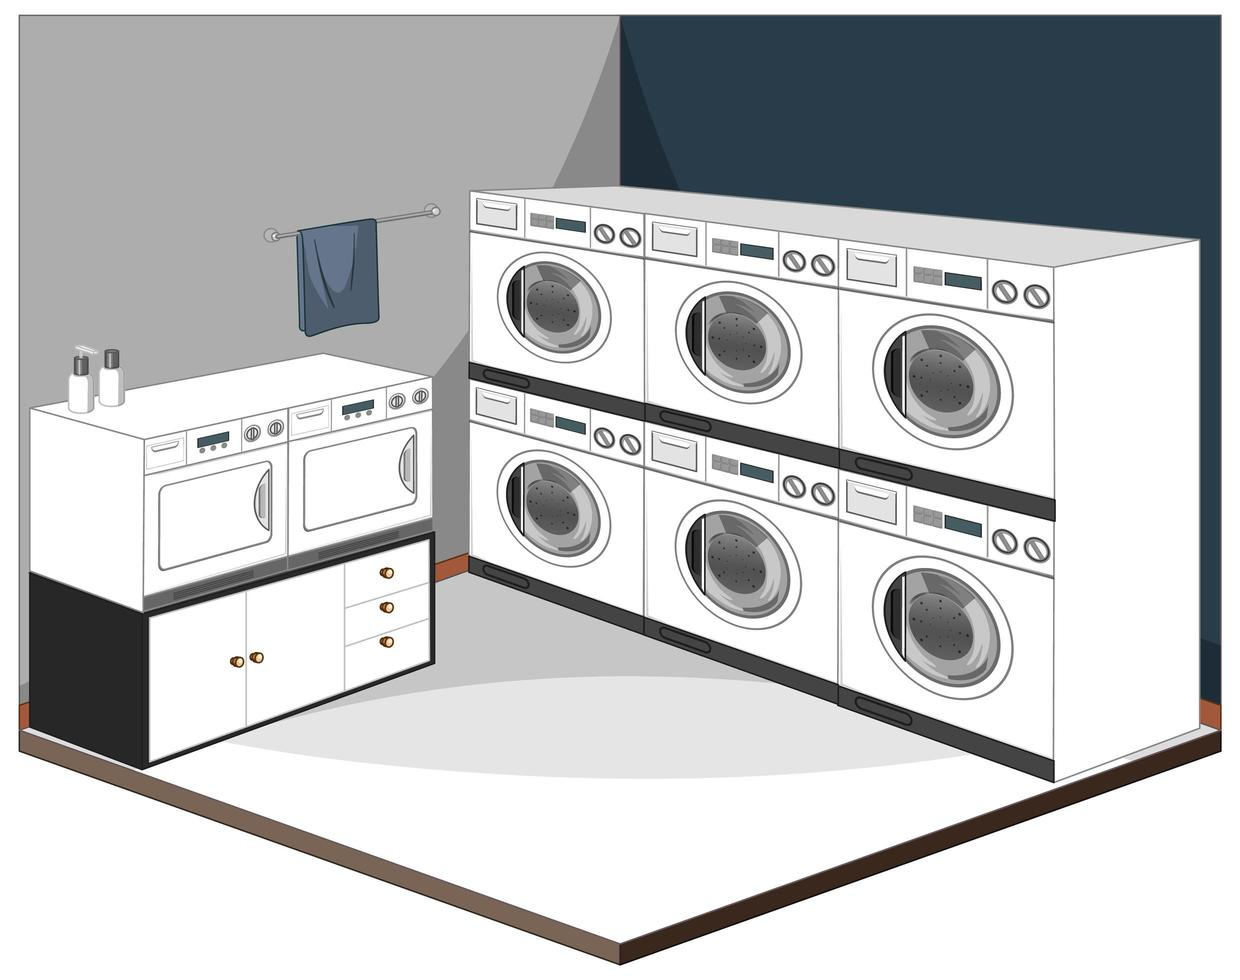 Laundry room interior with furniture vector